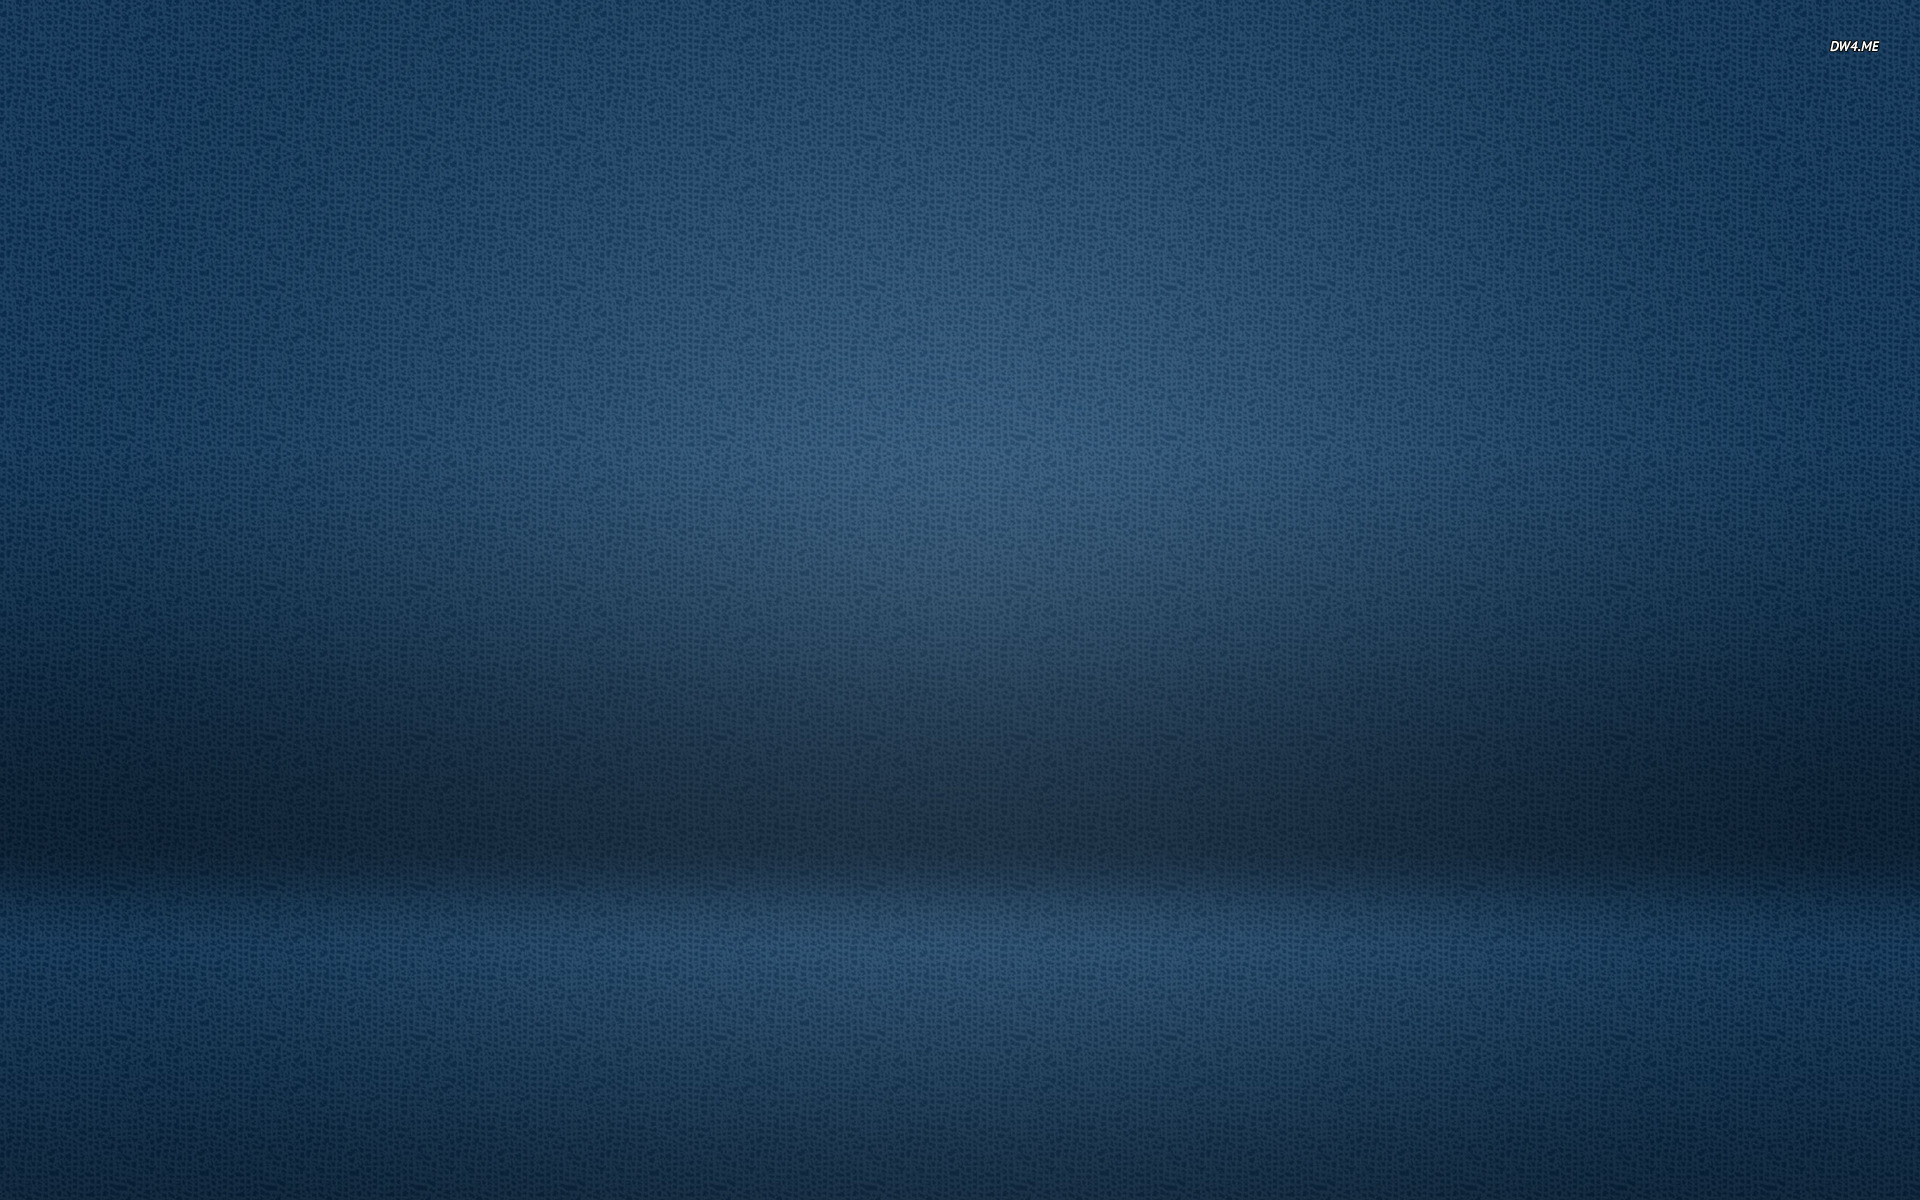 Android blue pattern wallpaper   585654 1920x1200